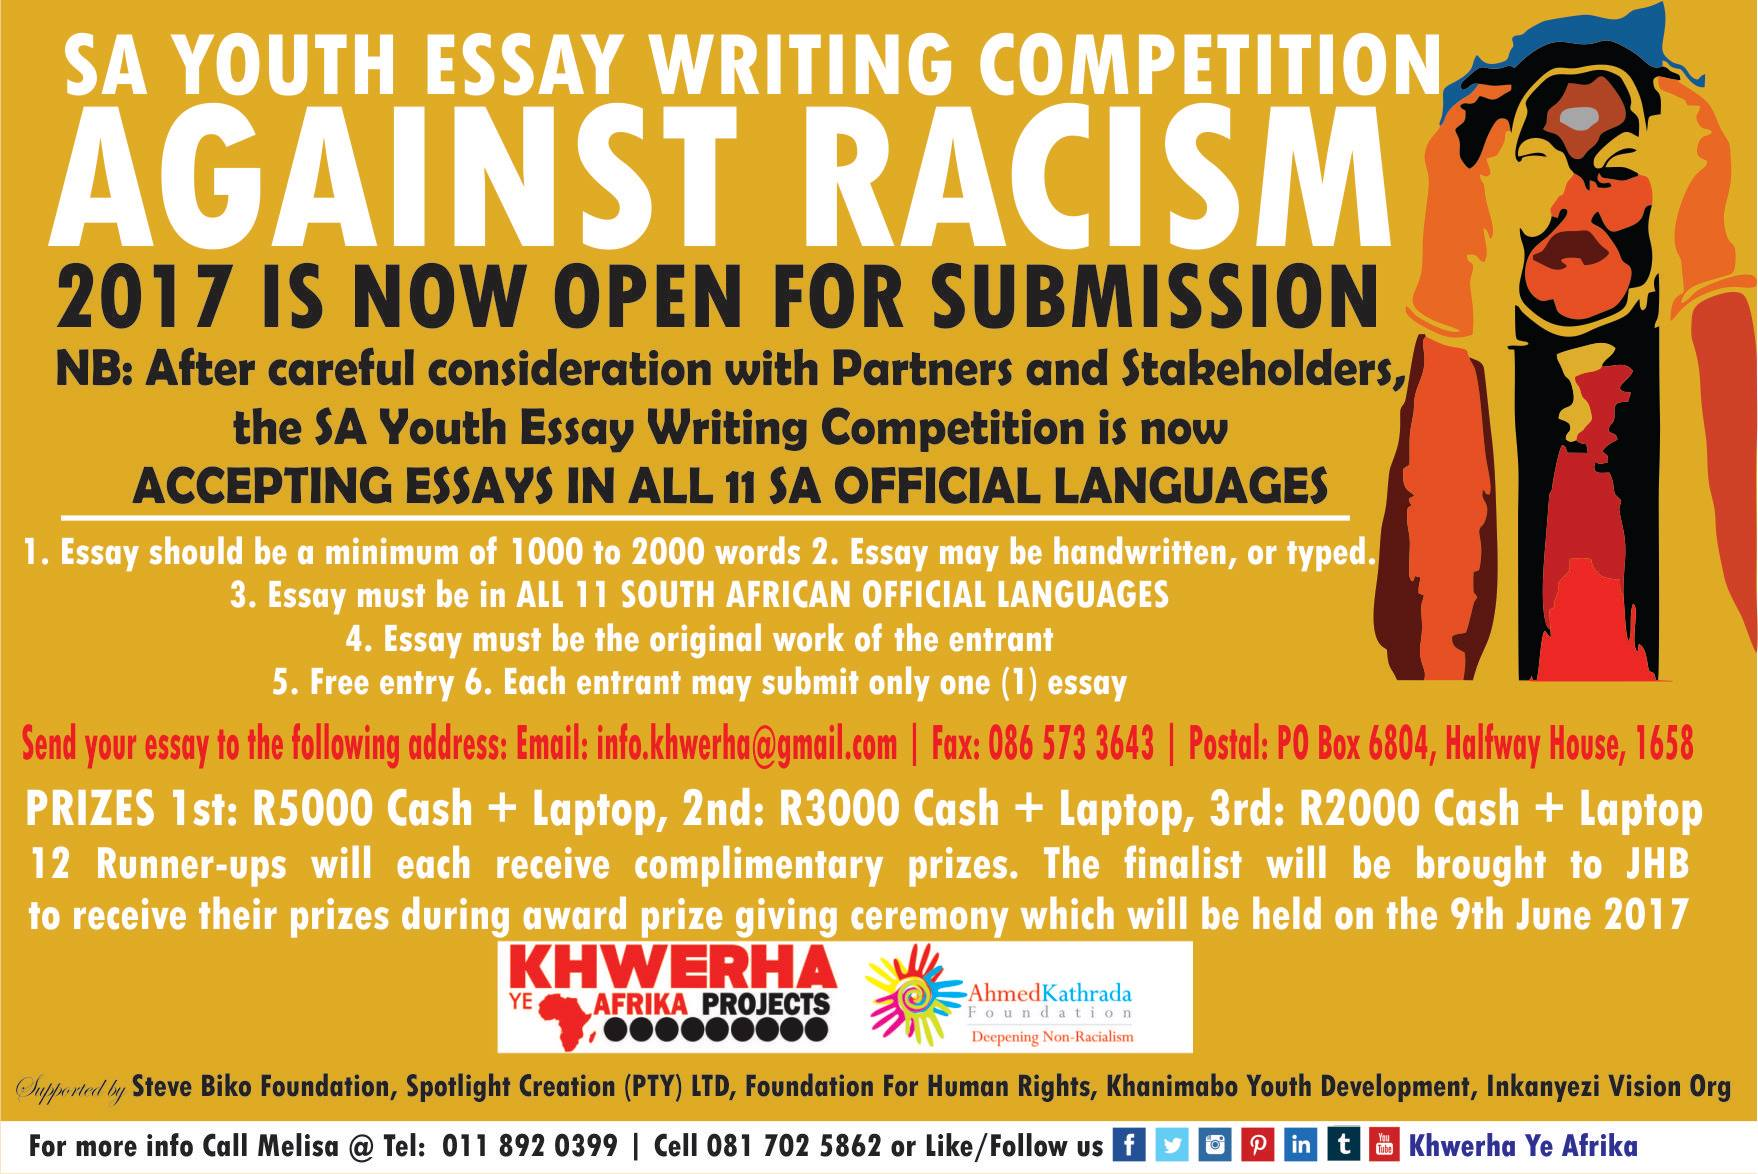 youth essay competition against racism